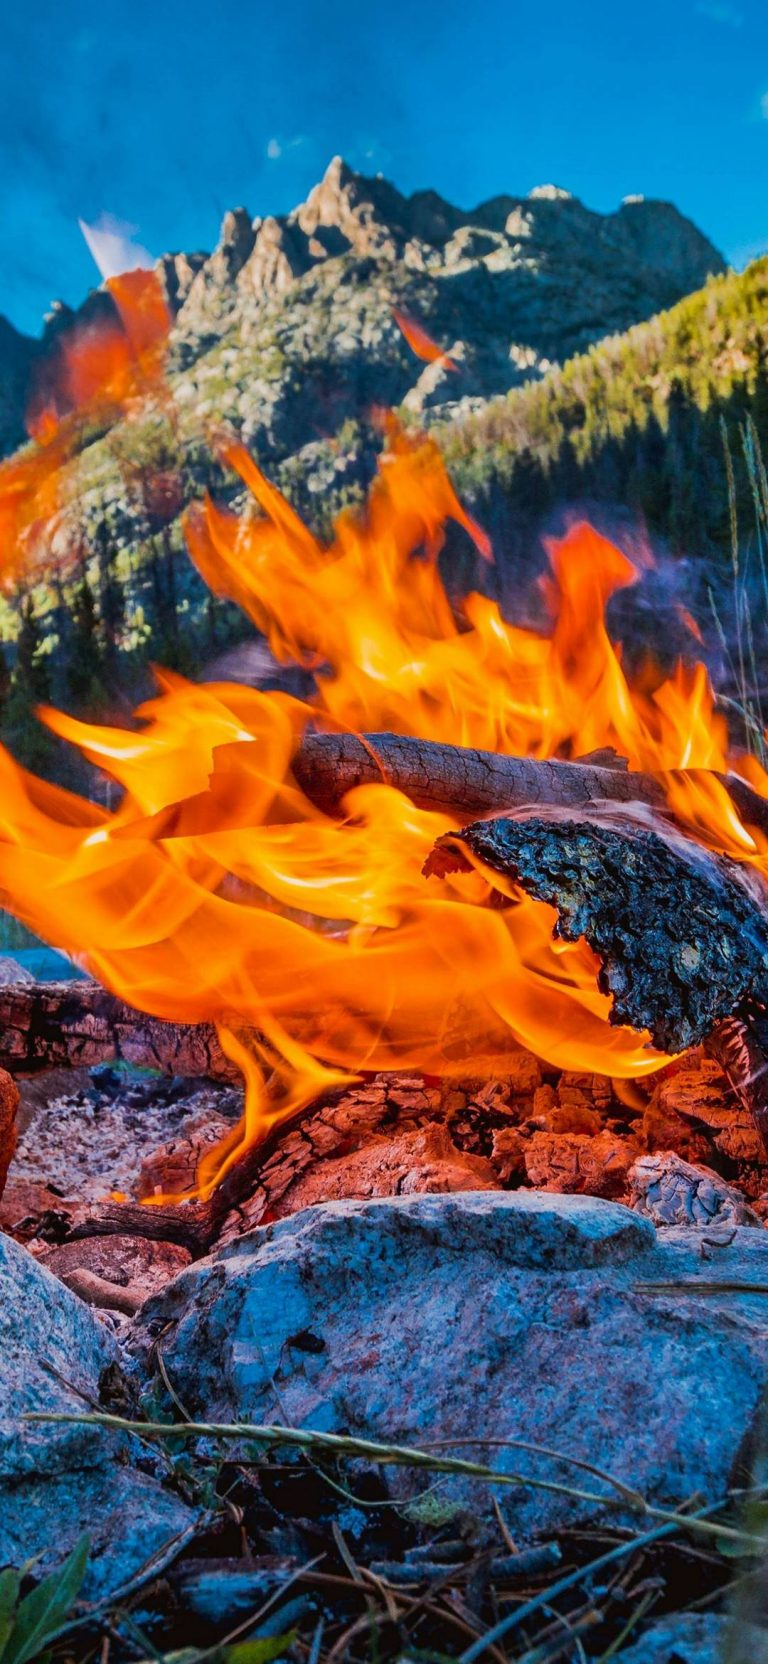 Flame With Stones On Rock Wallpaper 1080x2340 768x1664